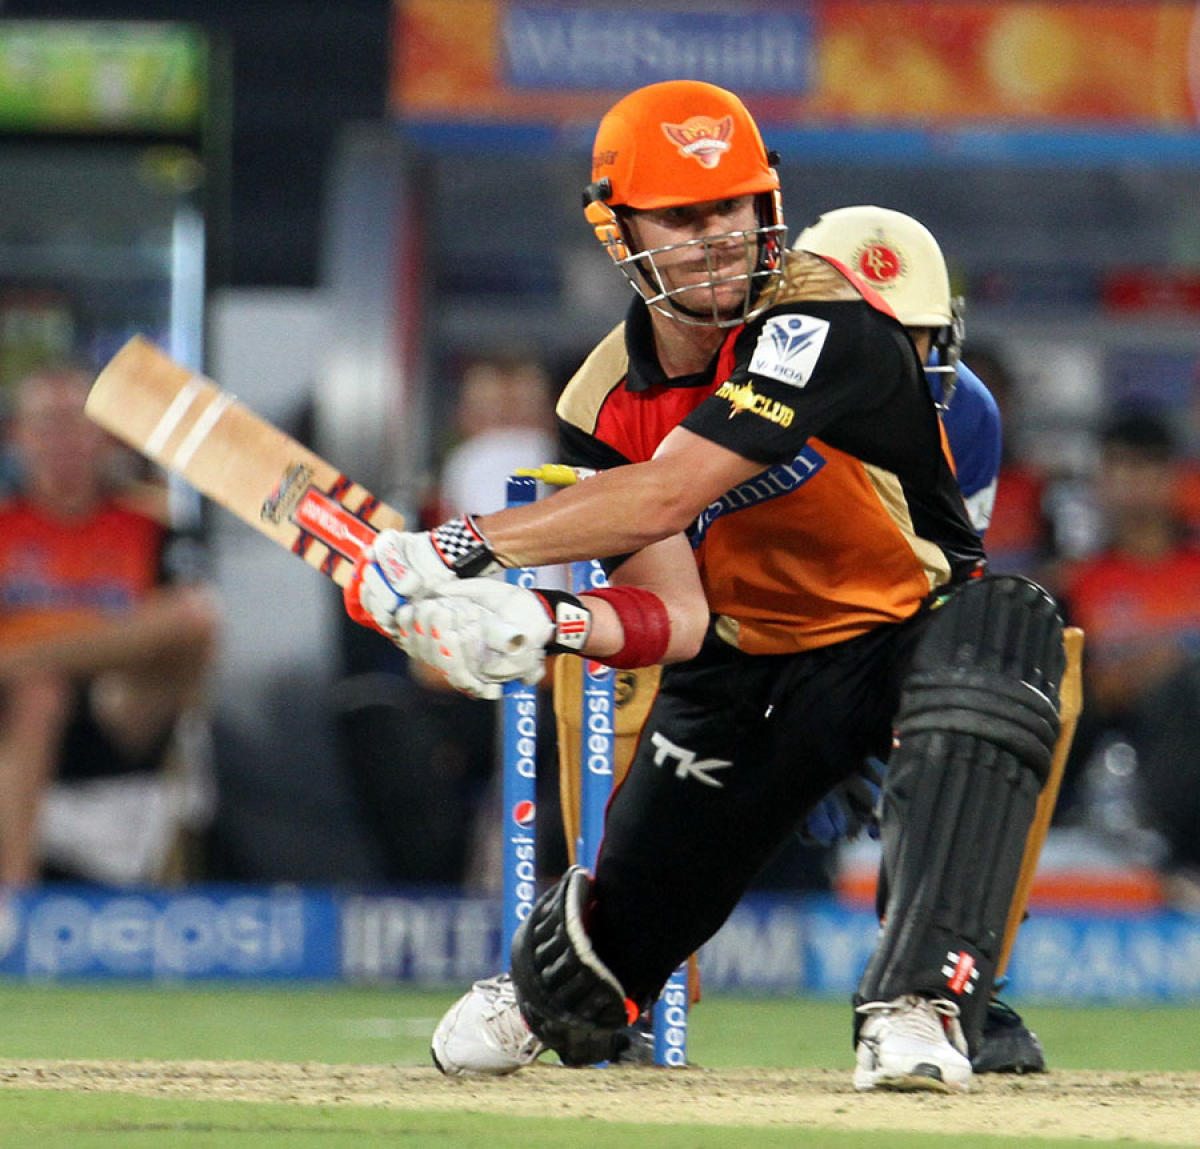 David Warner stretched the rules with his switch hit, a shot that found approval from the governing body.